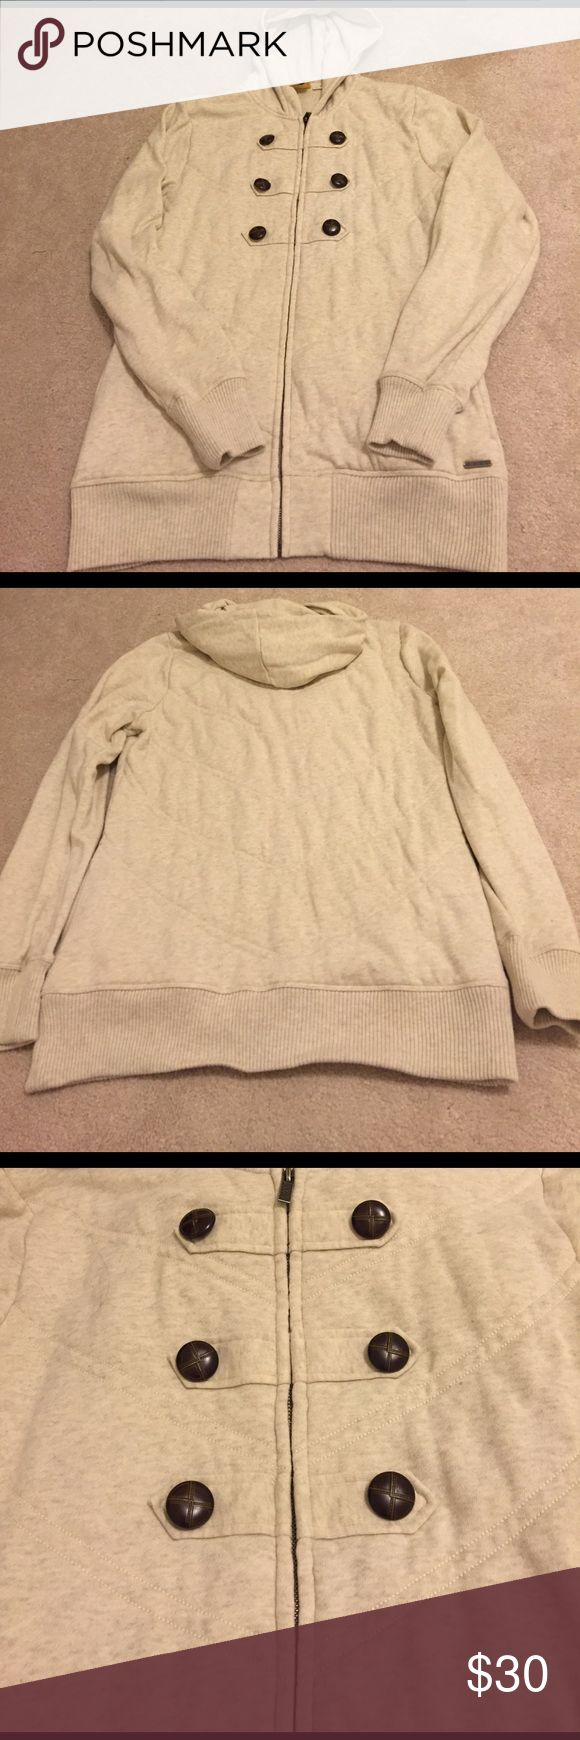 EUC Cream Heathered Zip Up Hooded Roxy Jacket. EUC Cream Heathered Zip Up Hooded Roxy Jacket. Cozy cream zip up hooded jacket. Faux buttons on the front. Side pockets. Only worn a few times. Washed on cold & hung up to dry. One small spot shown in the last picture. It's barely noticeable and blends in. No other flaws. No signs of wear. Size XL. Shell & lining consist of 60% Cotton & 40% Polyester. Comes from a pet free & smoke free home. No trades. Price reflects small spot. All proceeds…